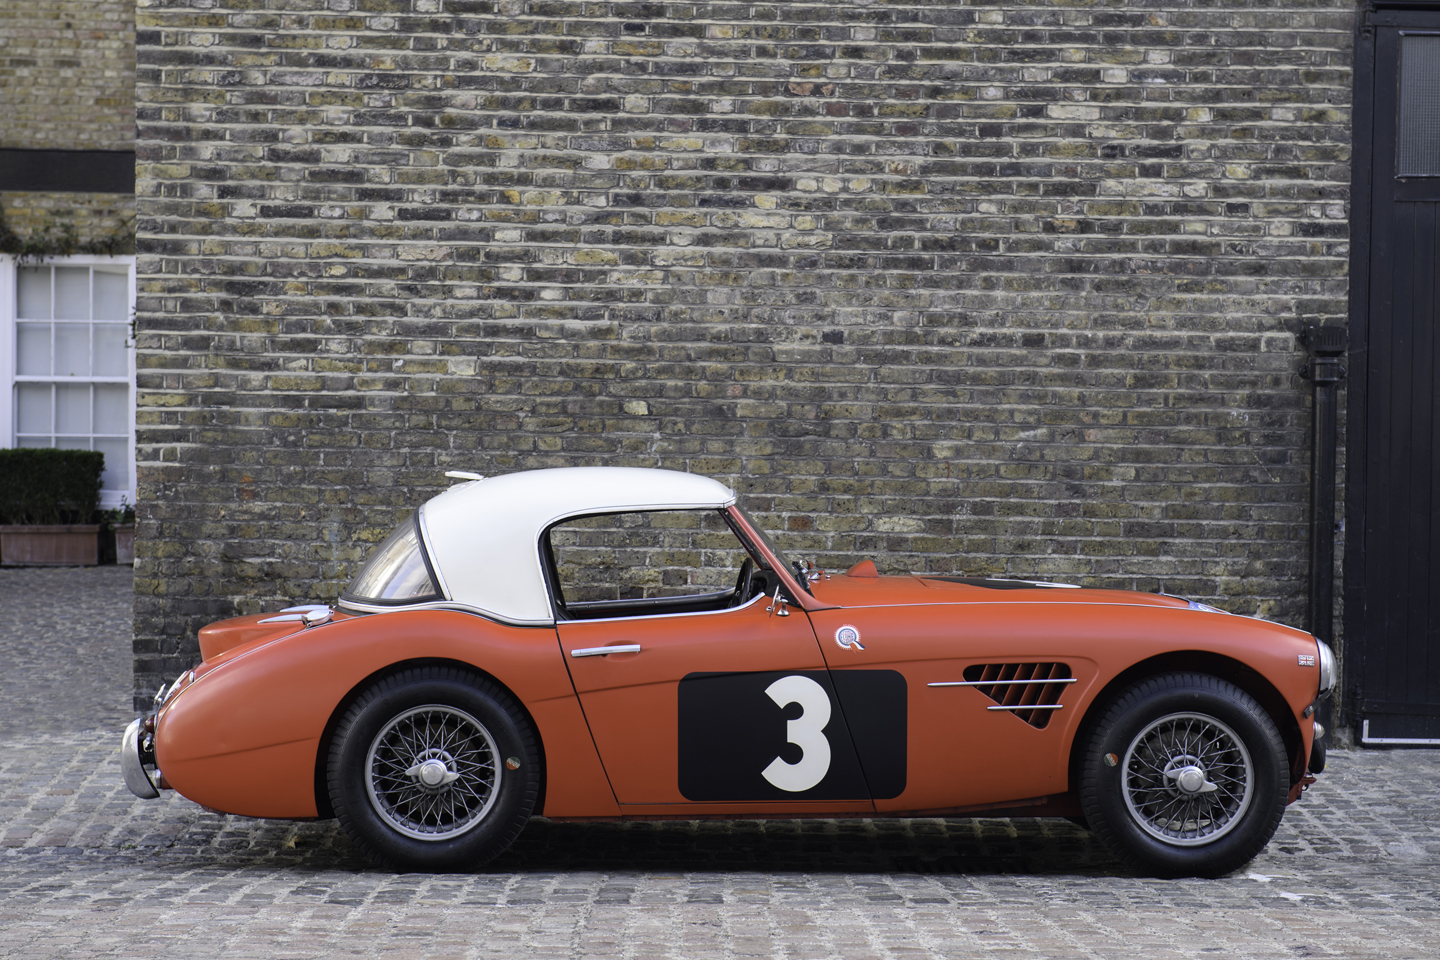 1961 Austin Healey 3000 Mk1 Works | Previously Sold | FISKENS